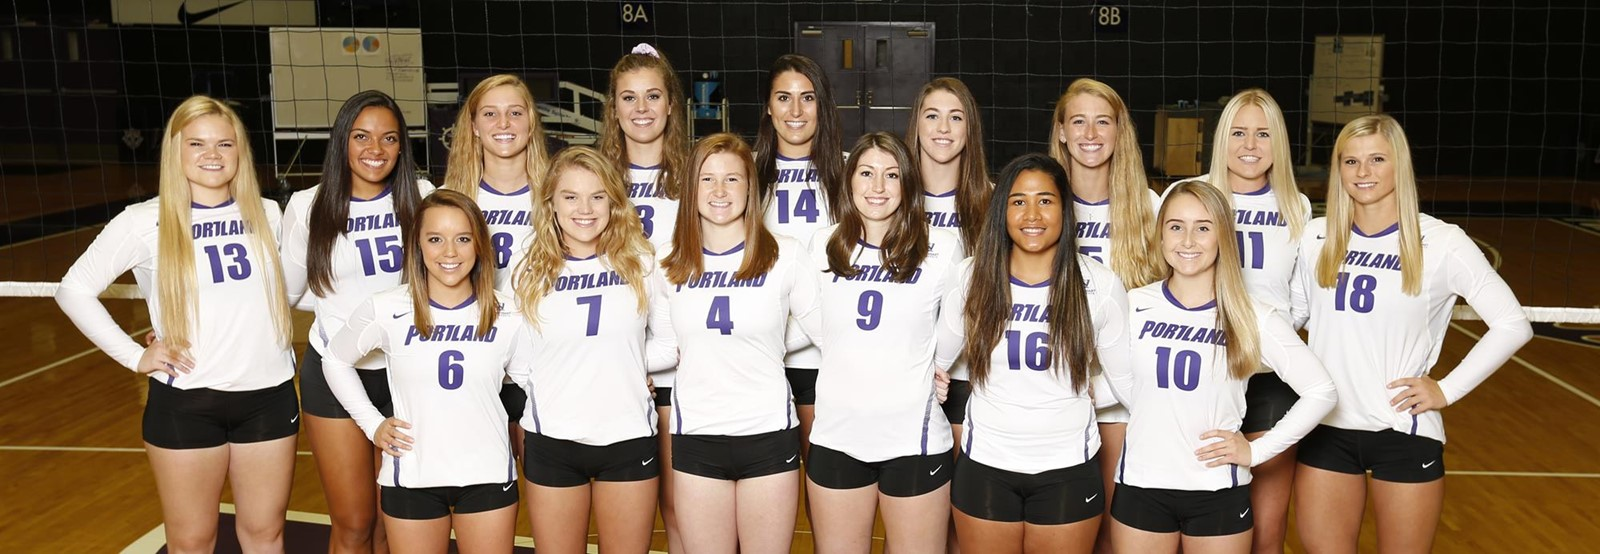 Colorado State Volleyball Roster 2018